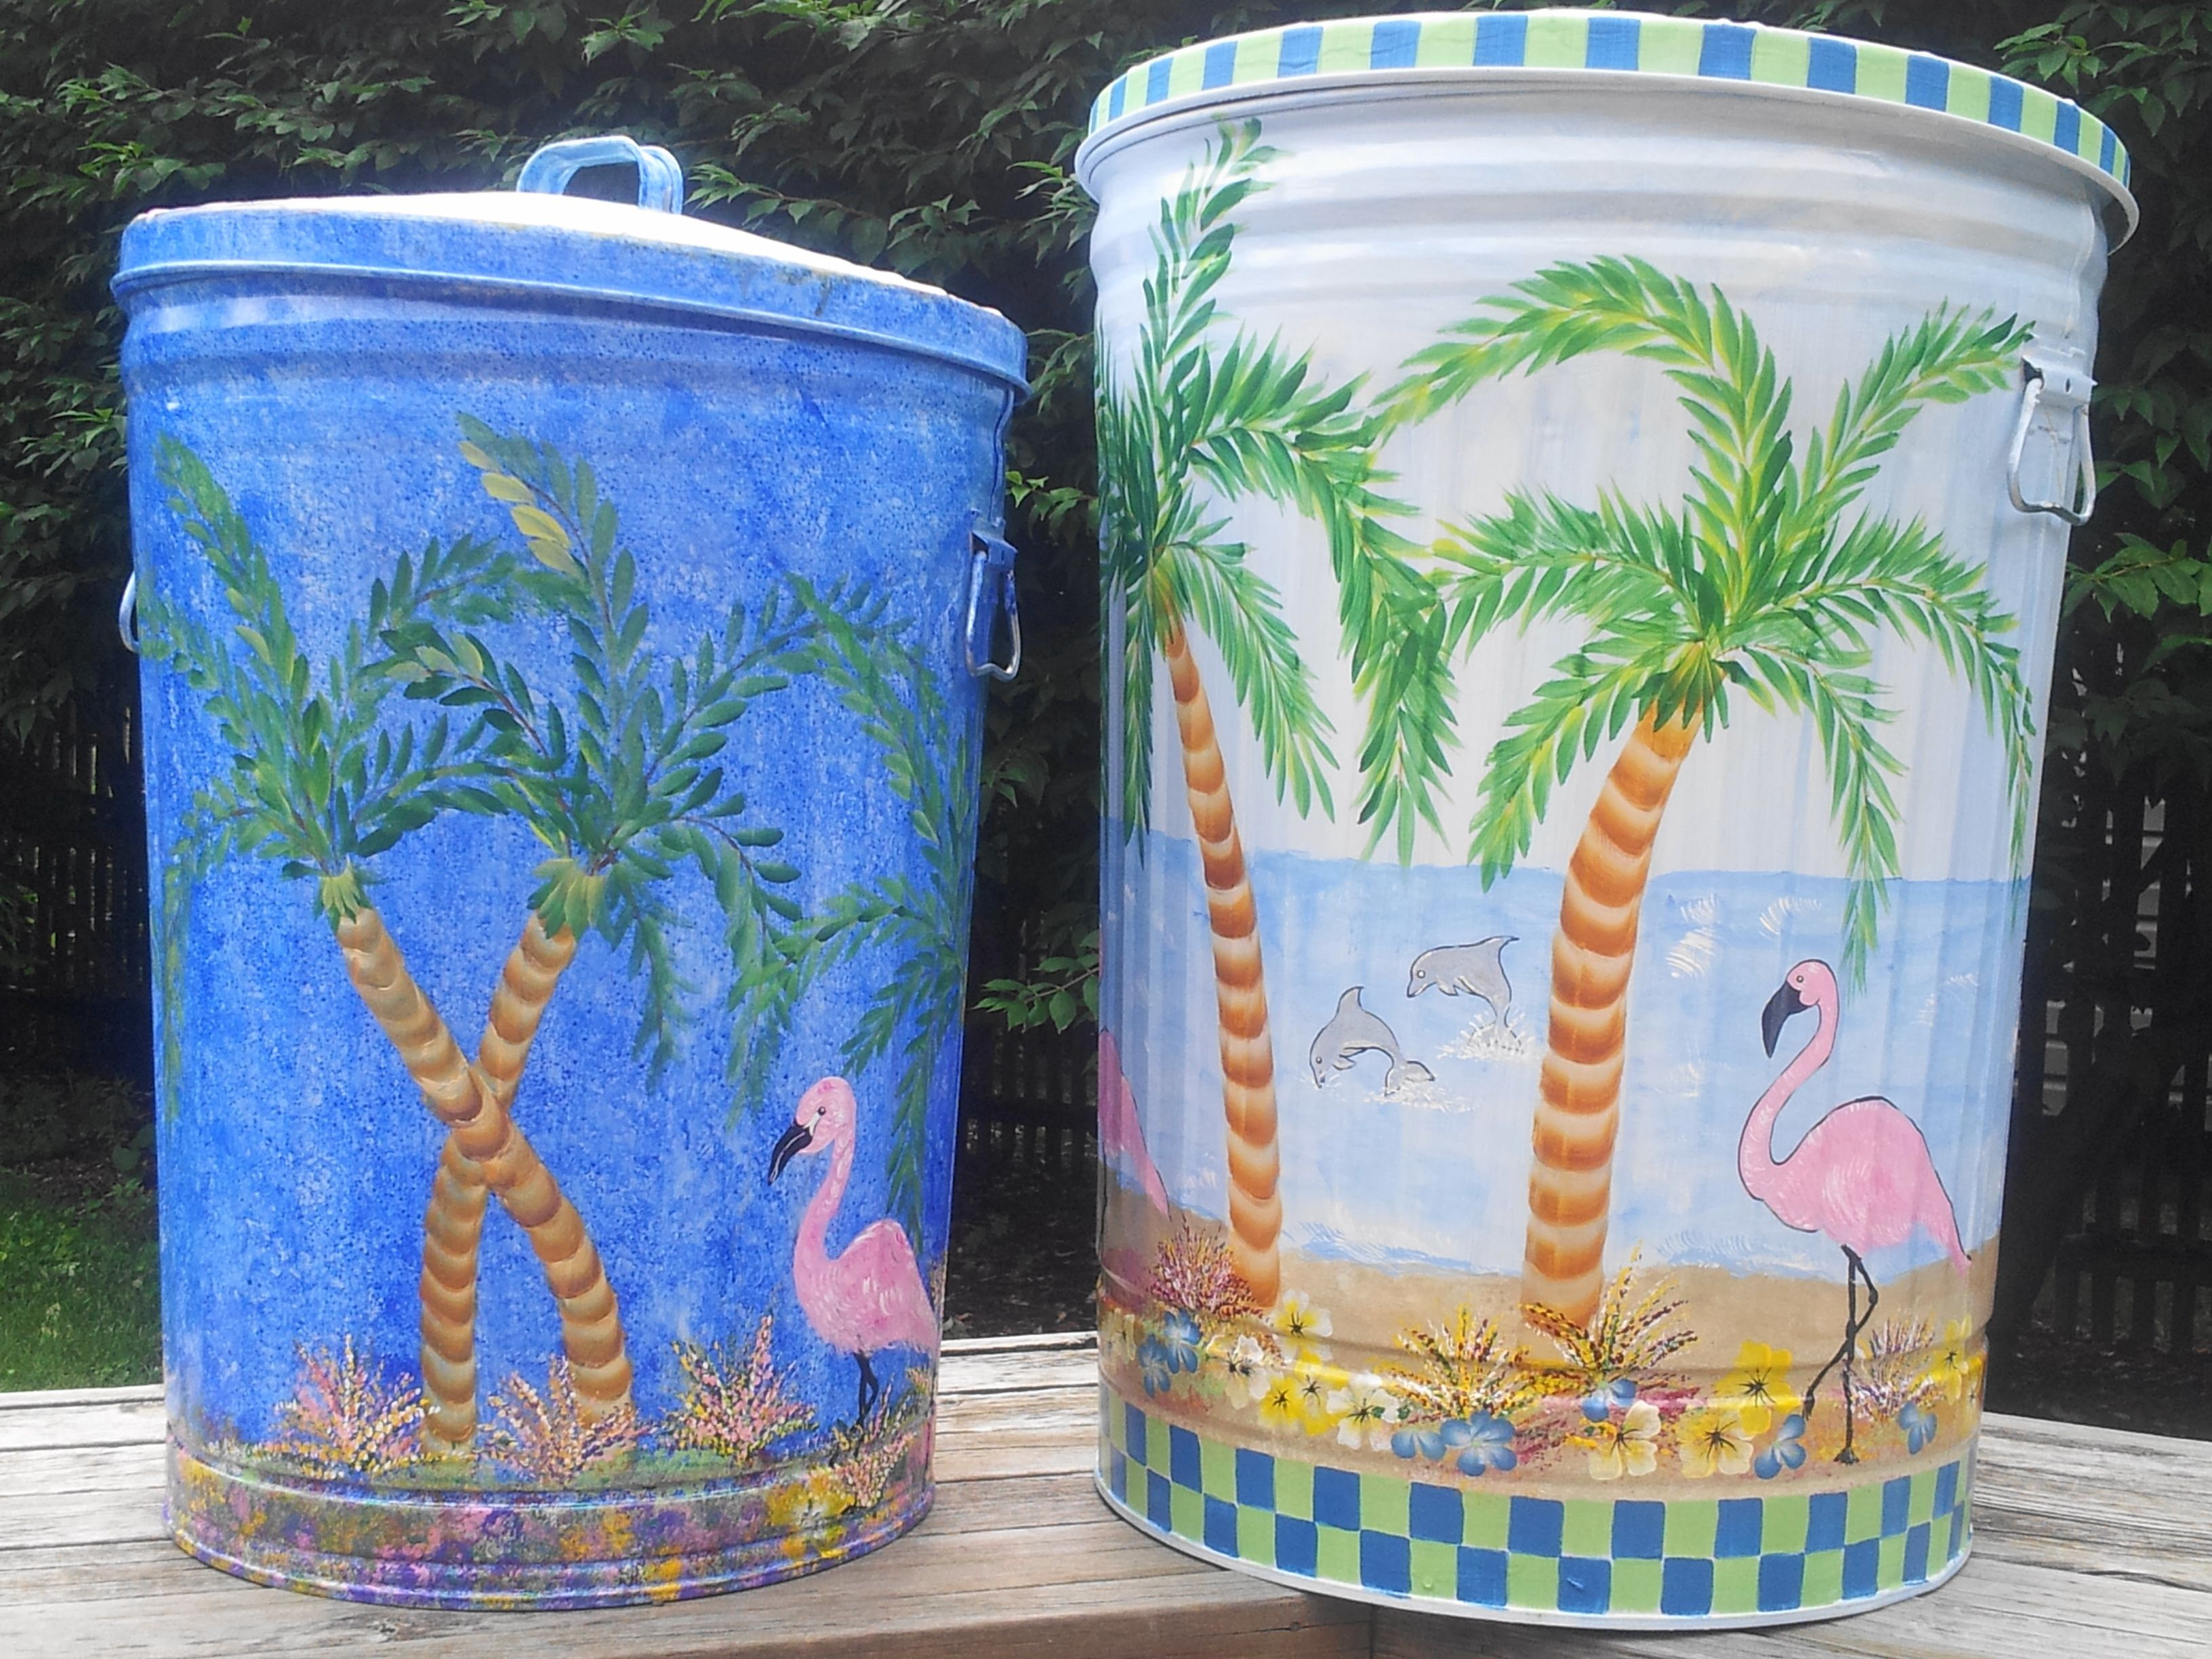 30 gallon u0026 20 gallon hand painted trash cans etsy